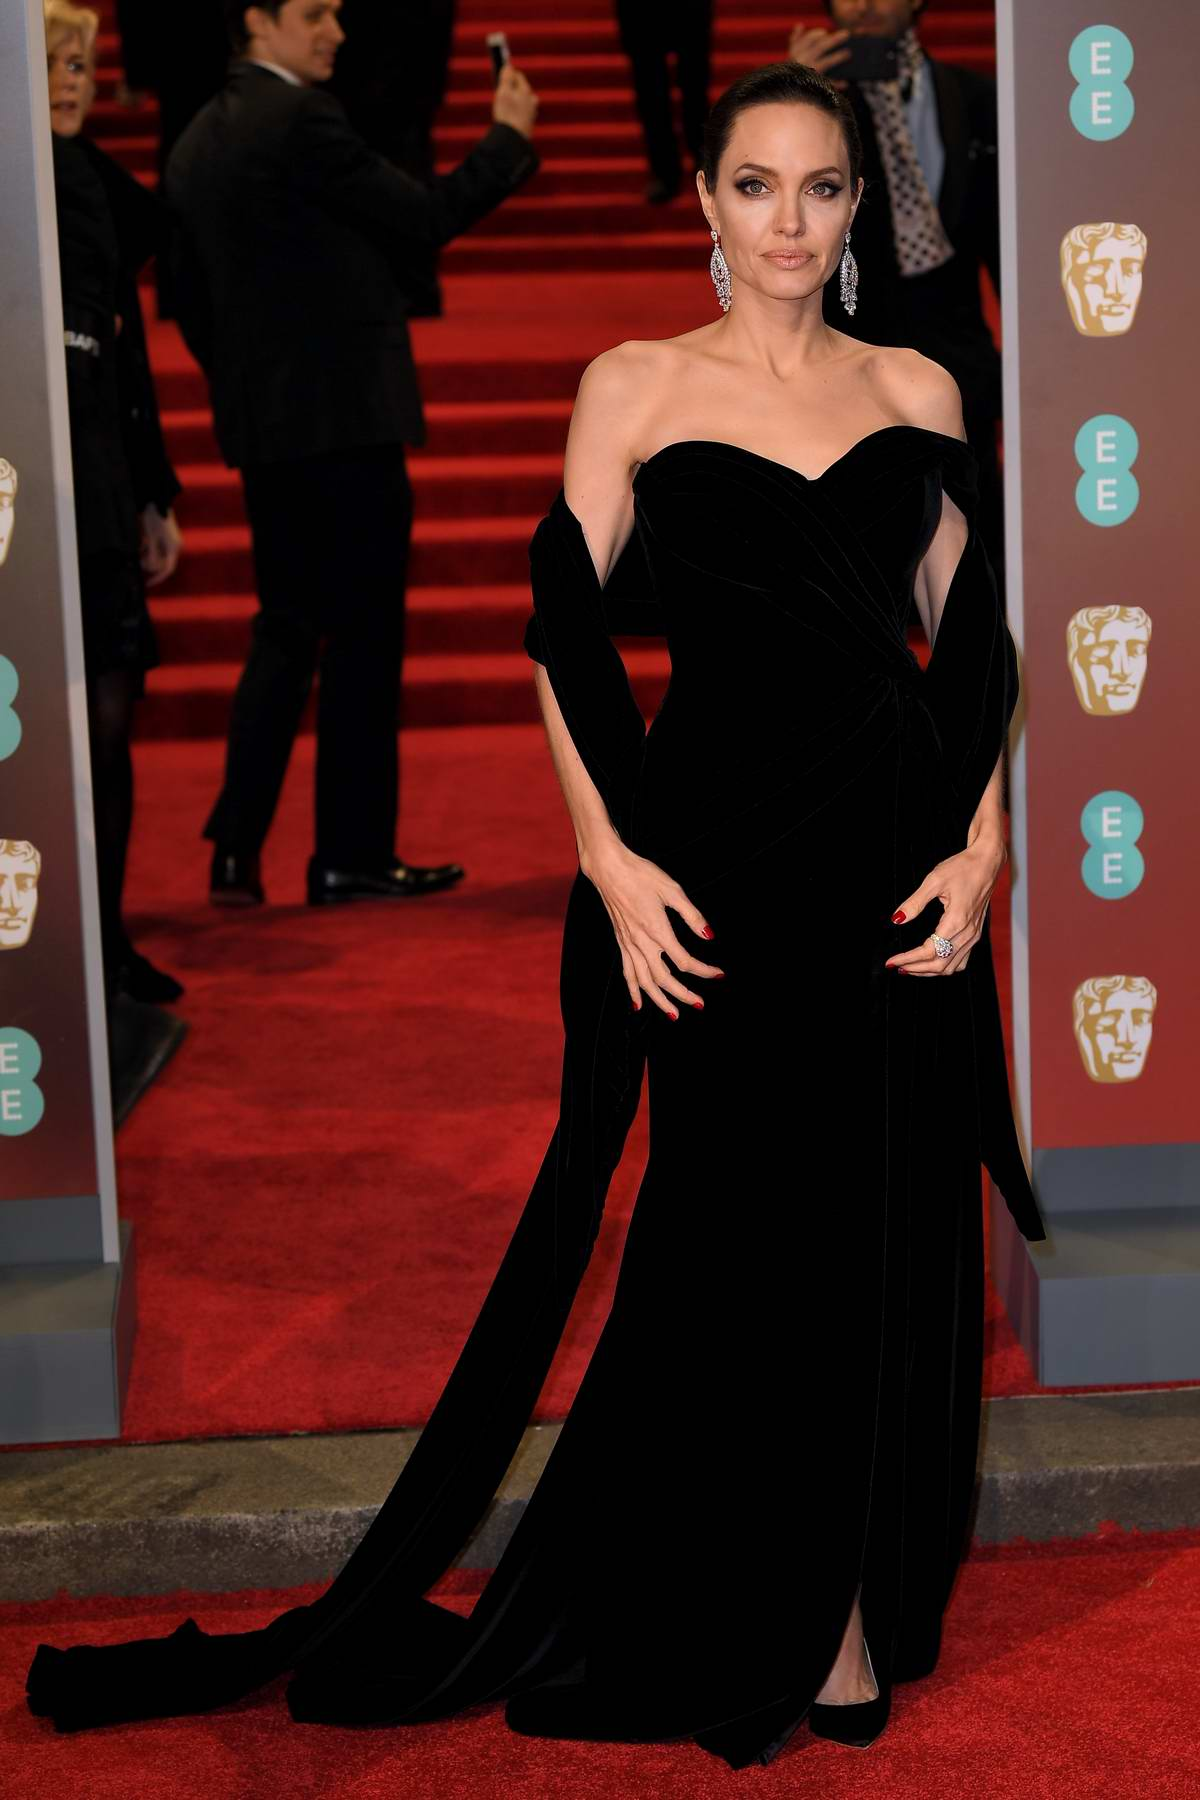 Angelina Jolie attends 71st British Academy Film Awards at Royal Albert Hall in London